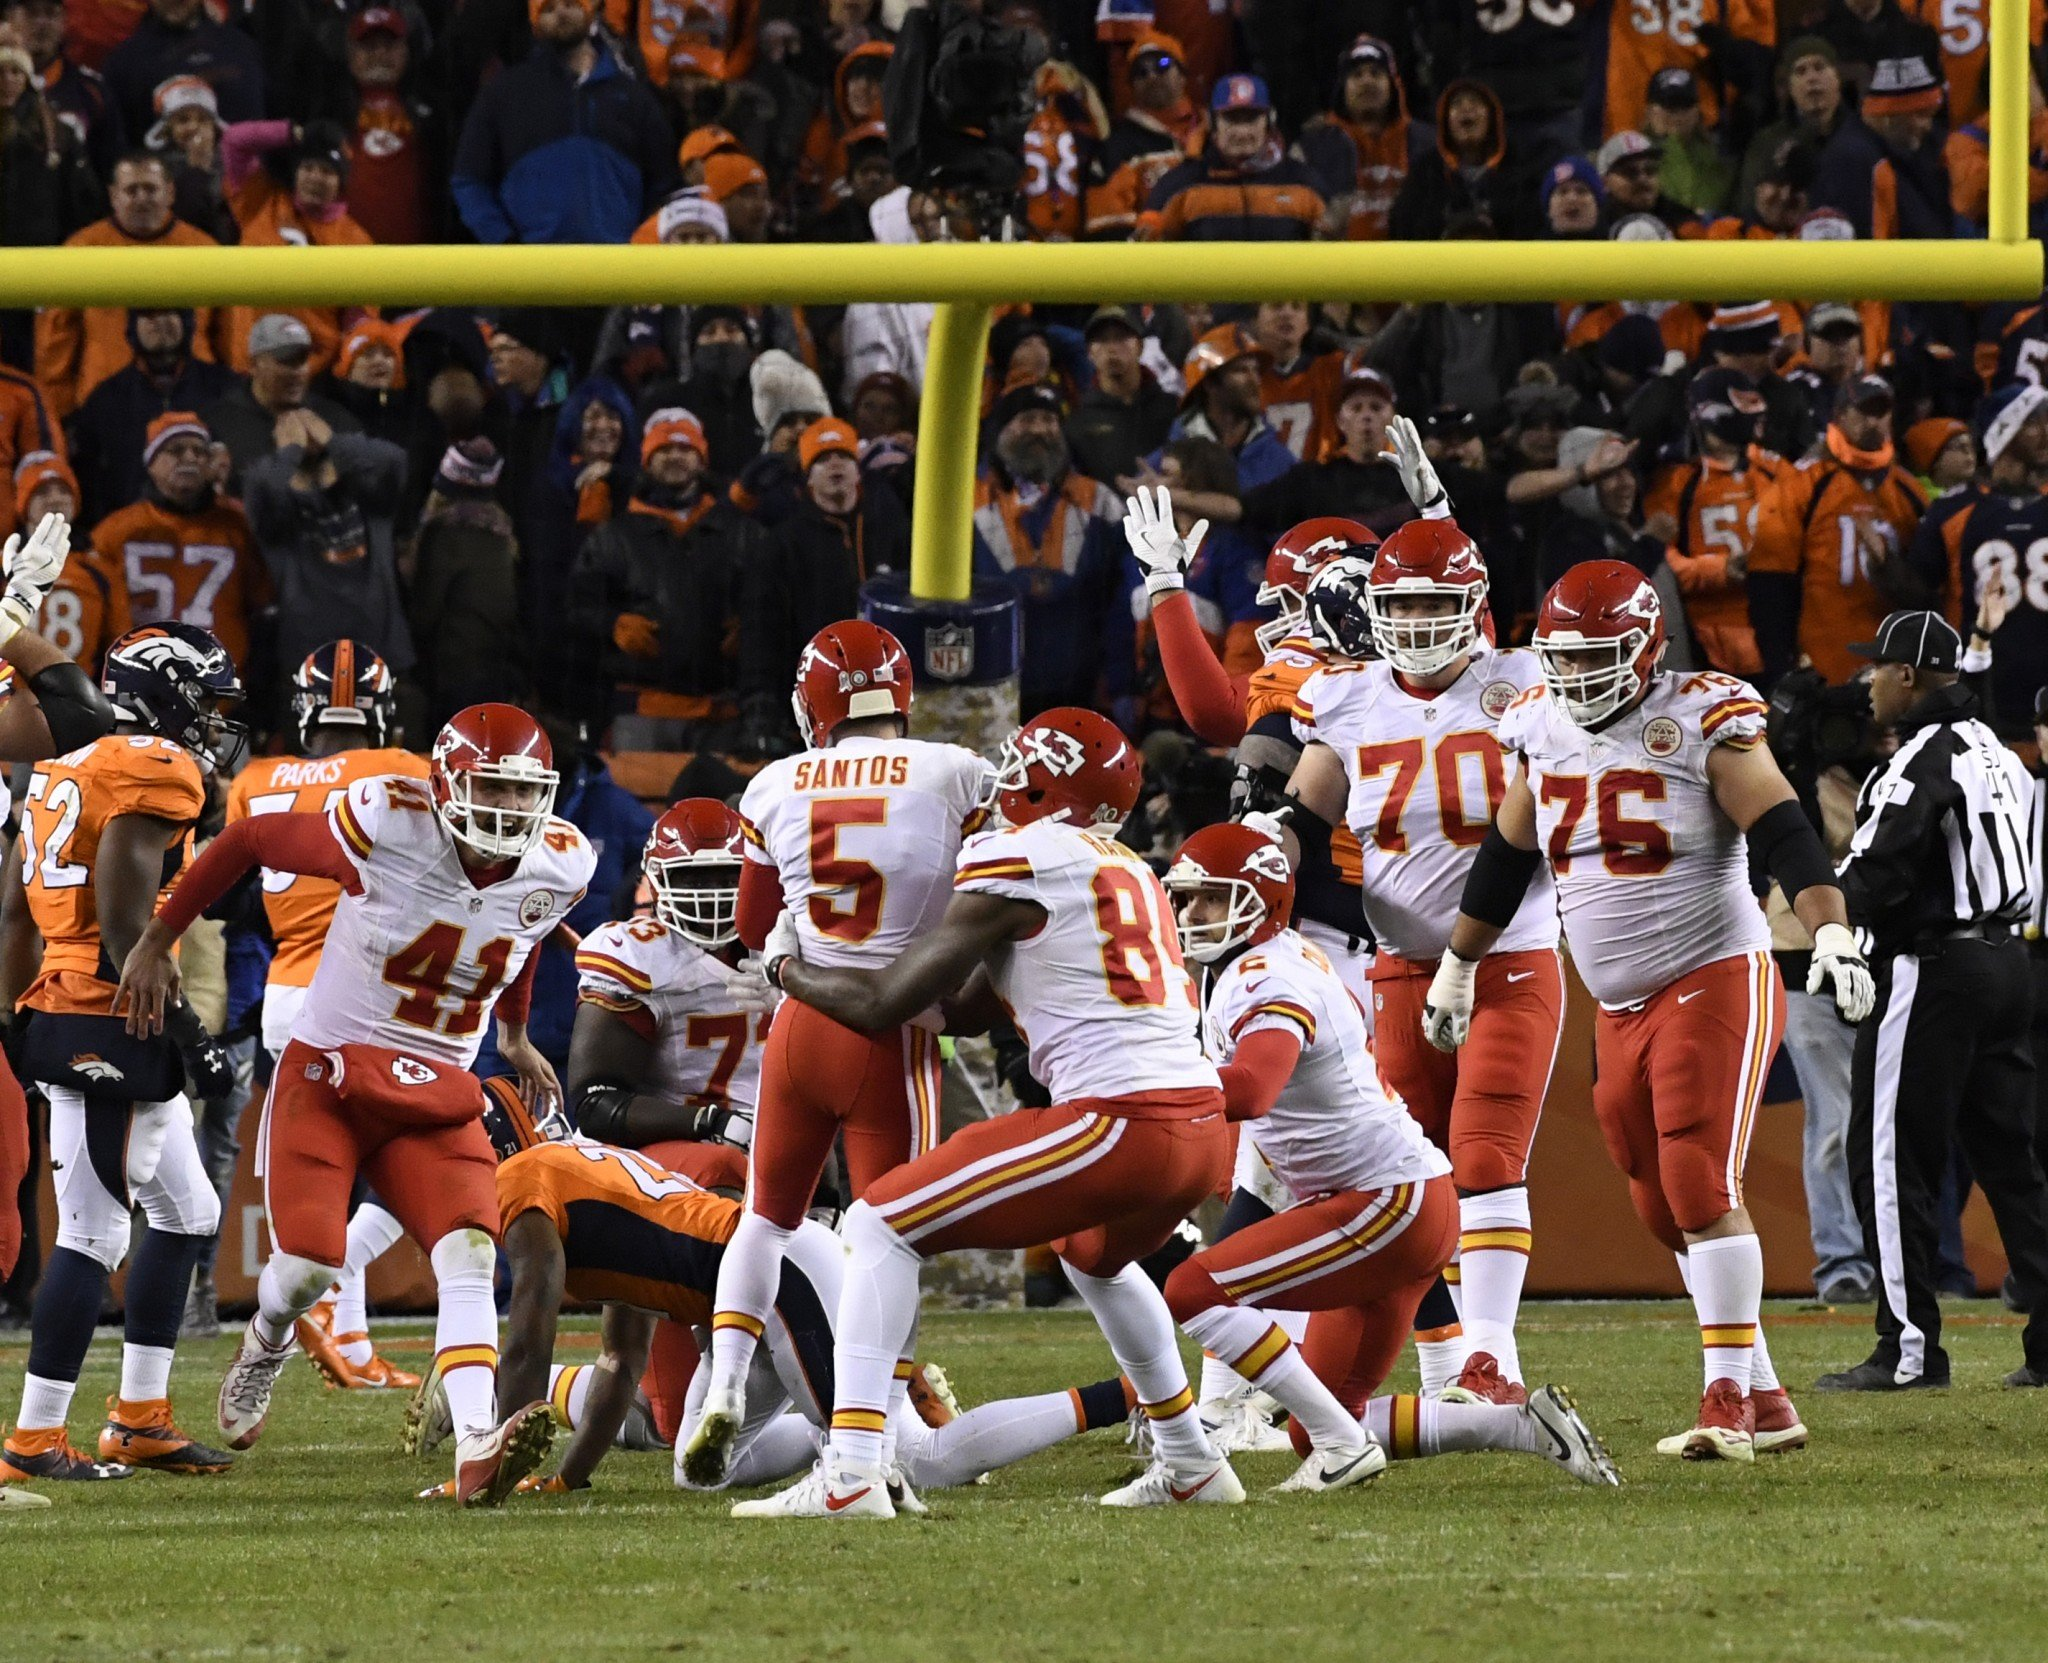 Bank's open: Cairo Santos' game-winning field goal hit off the upright. (Getty Images)